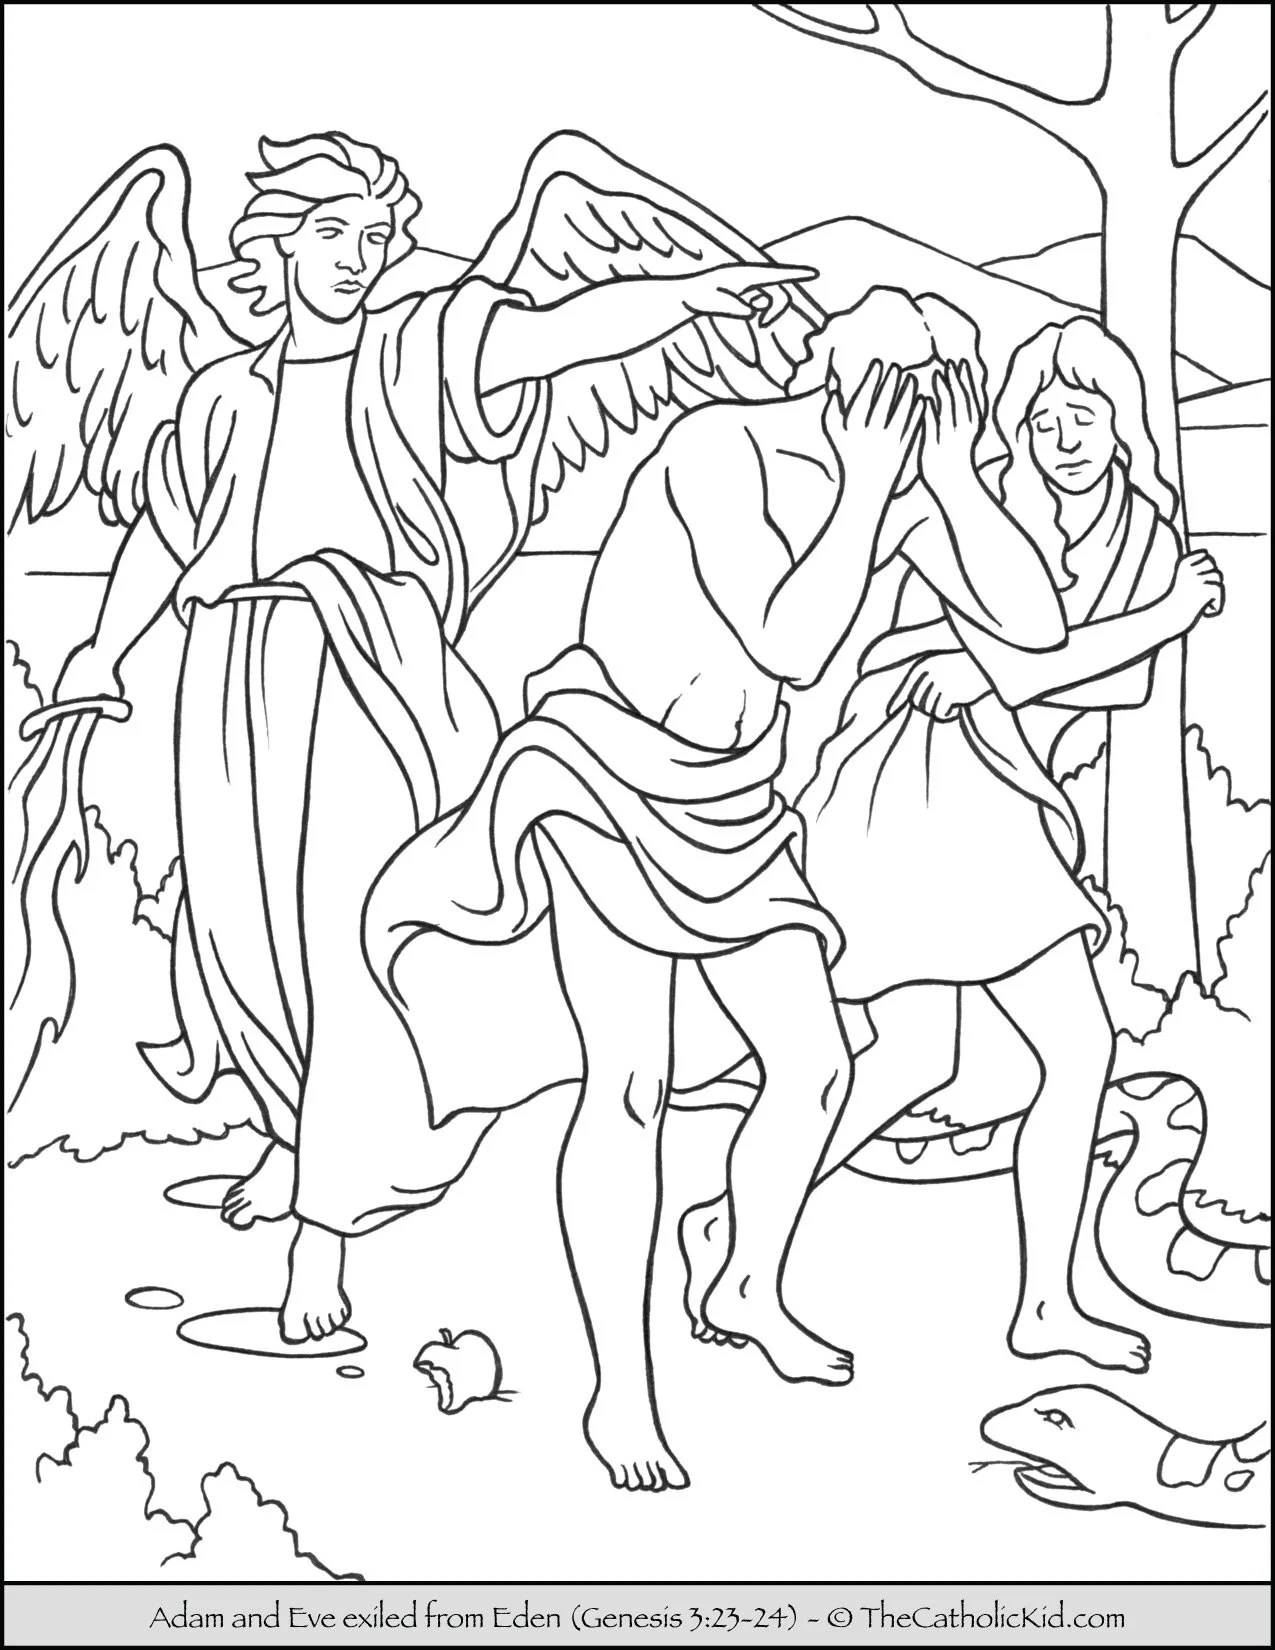 Bible Coloring Page Adam And Eve Exiled From Eden Thecatholickid Com